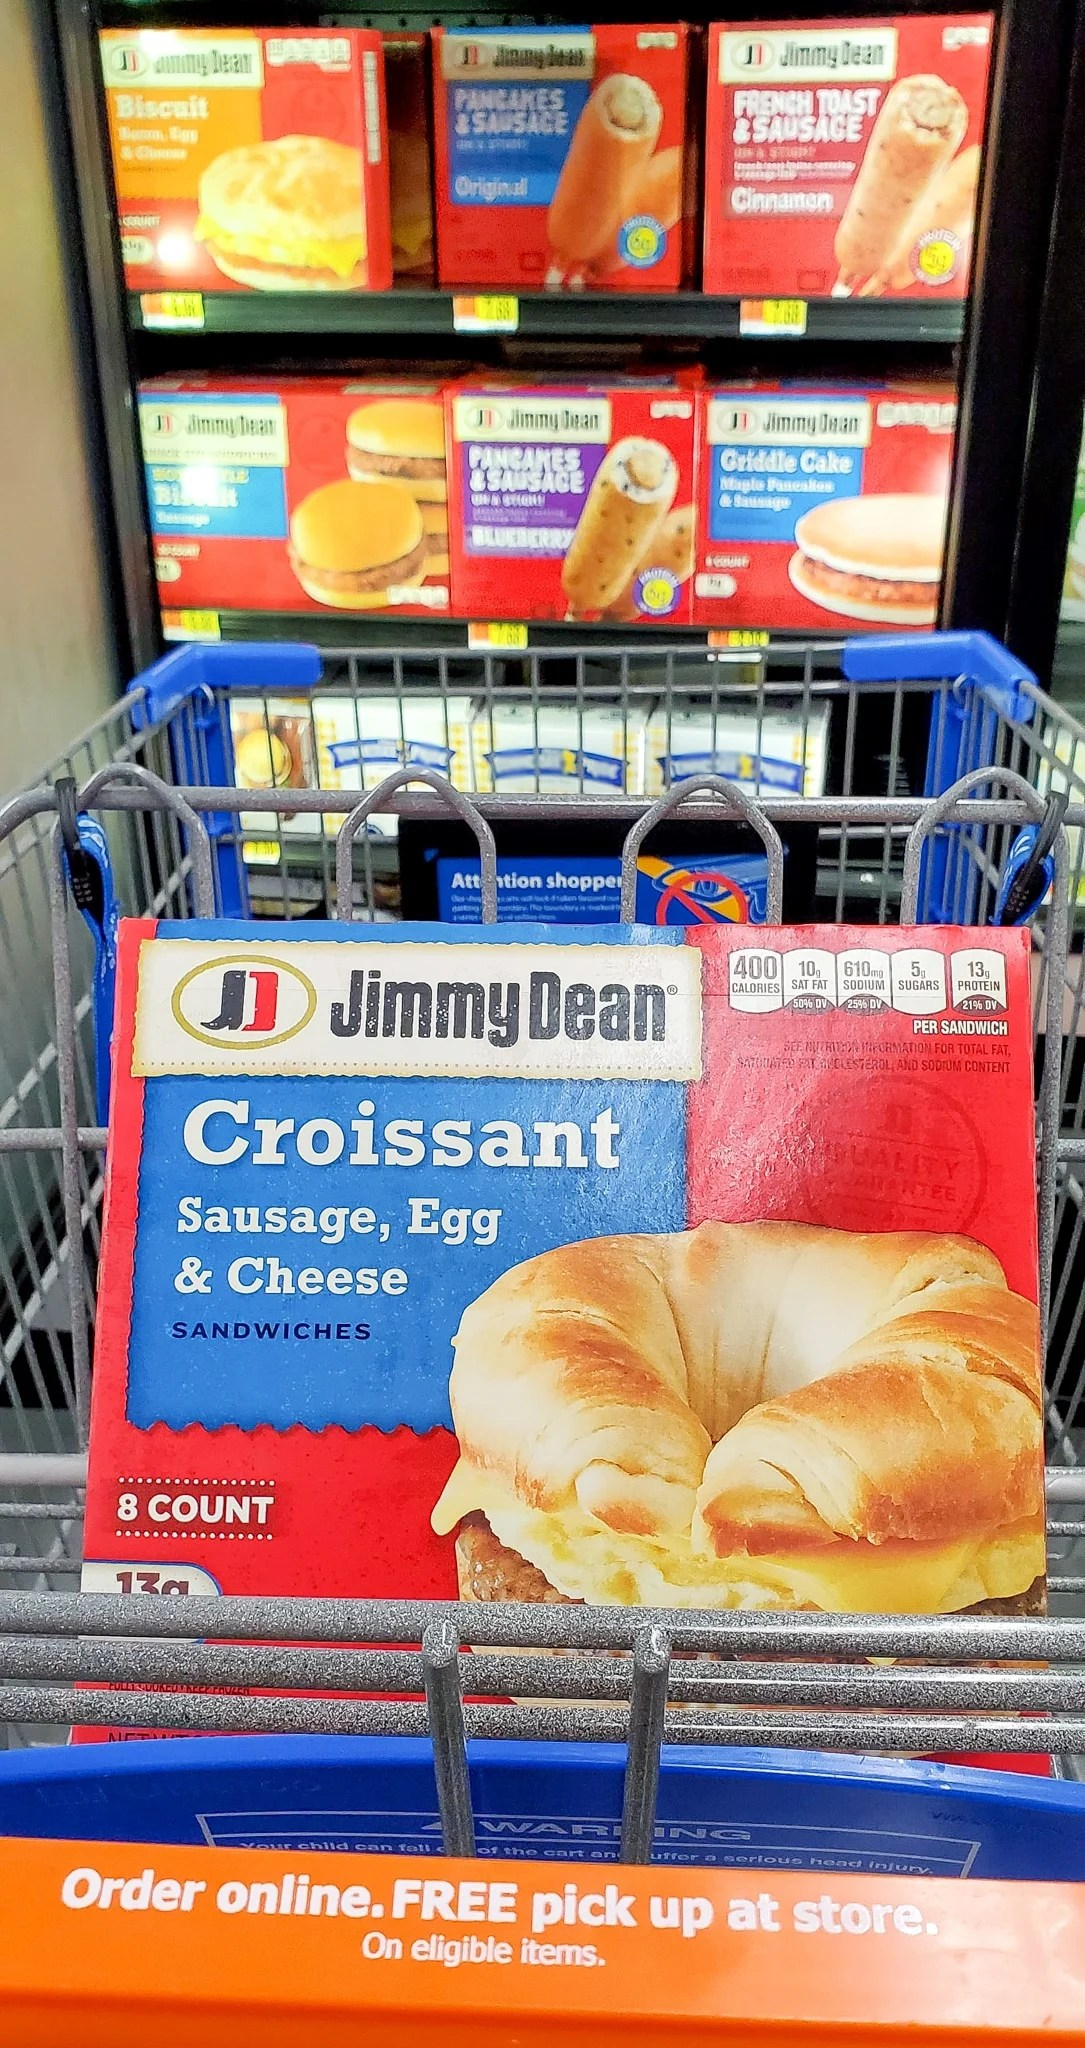 Jimmy Dean Walmart Frozen. Start your mornings off right with my 5 Stress-Free Breakfast Ideas featuring some of our favorite ways to start our day.